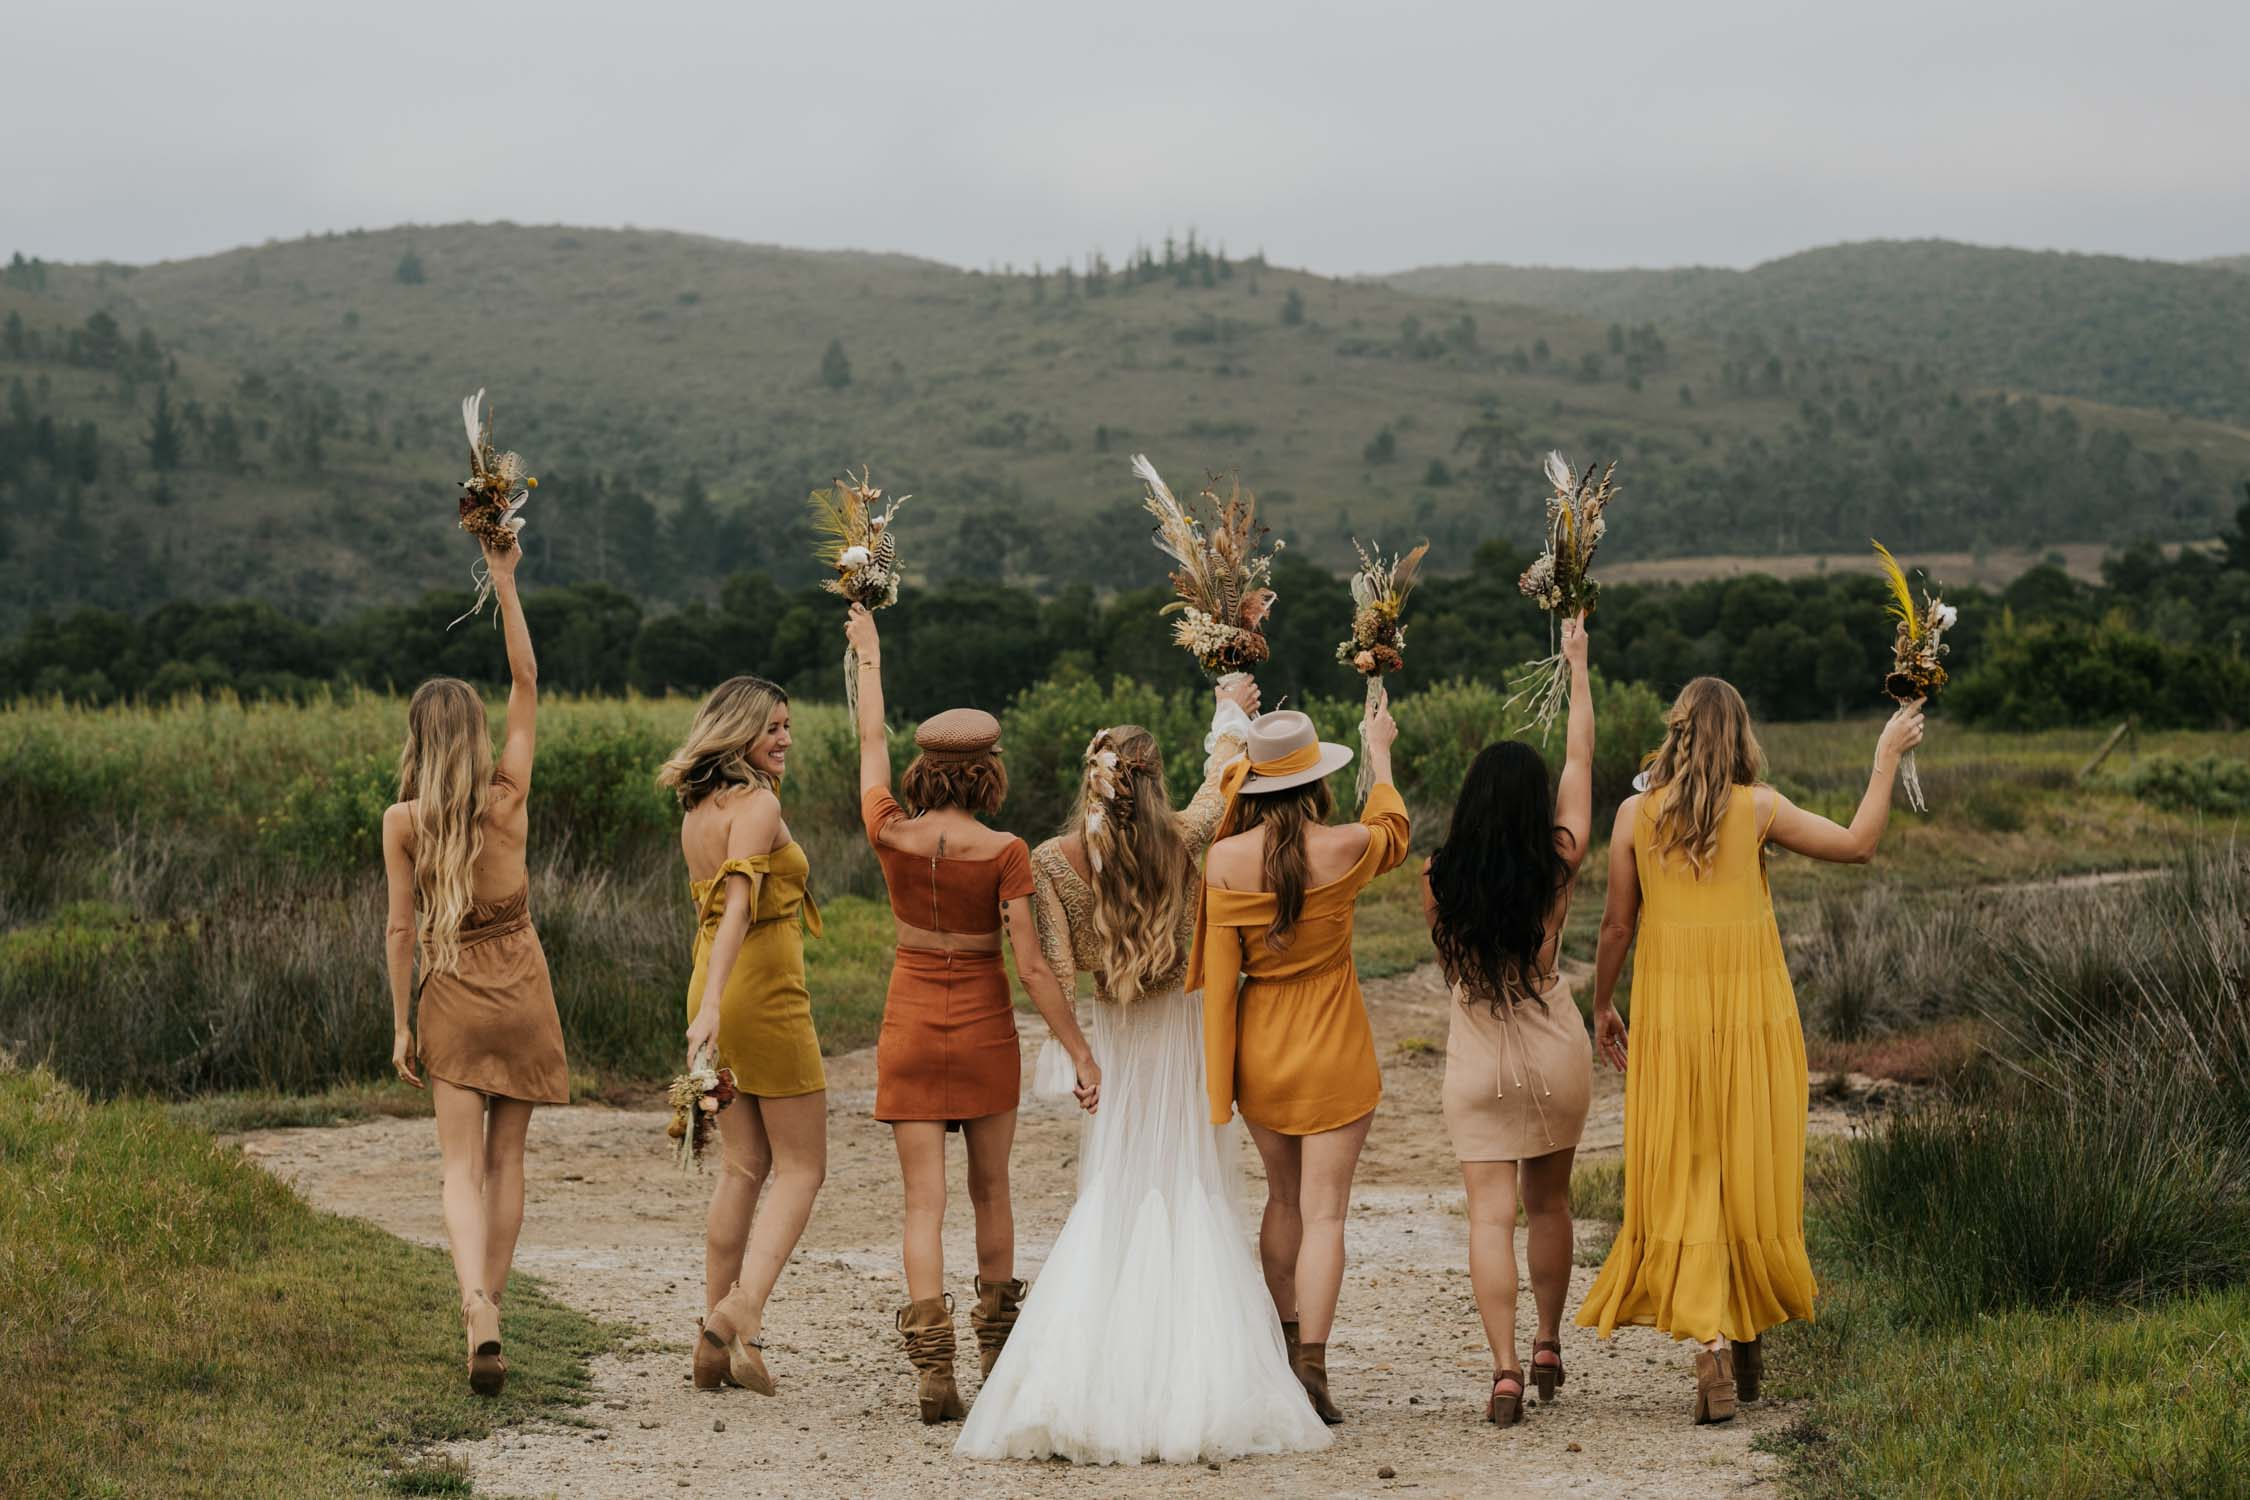 The ultimate boho gypsy bride tribe wearing gypsy sunshine and rust coloured dresses, hats and leather boots